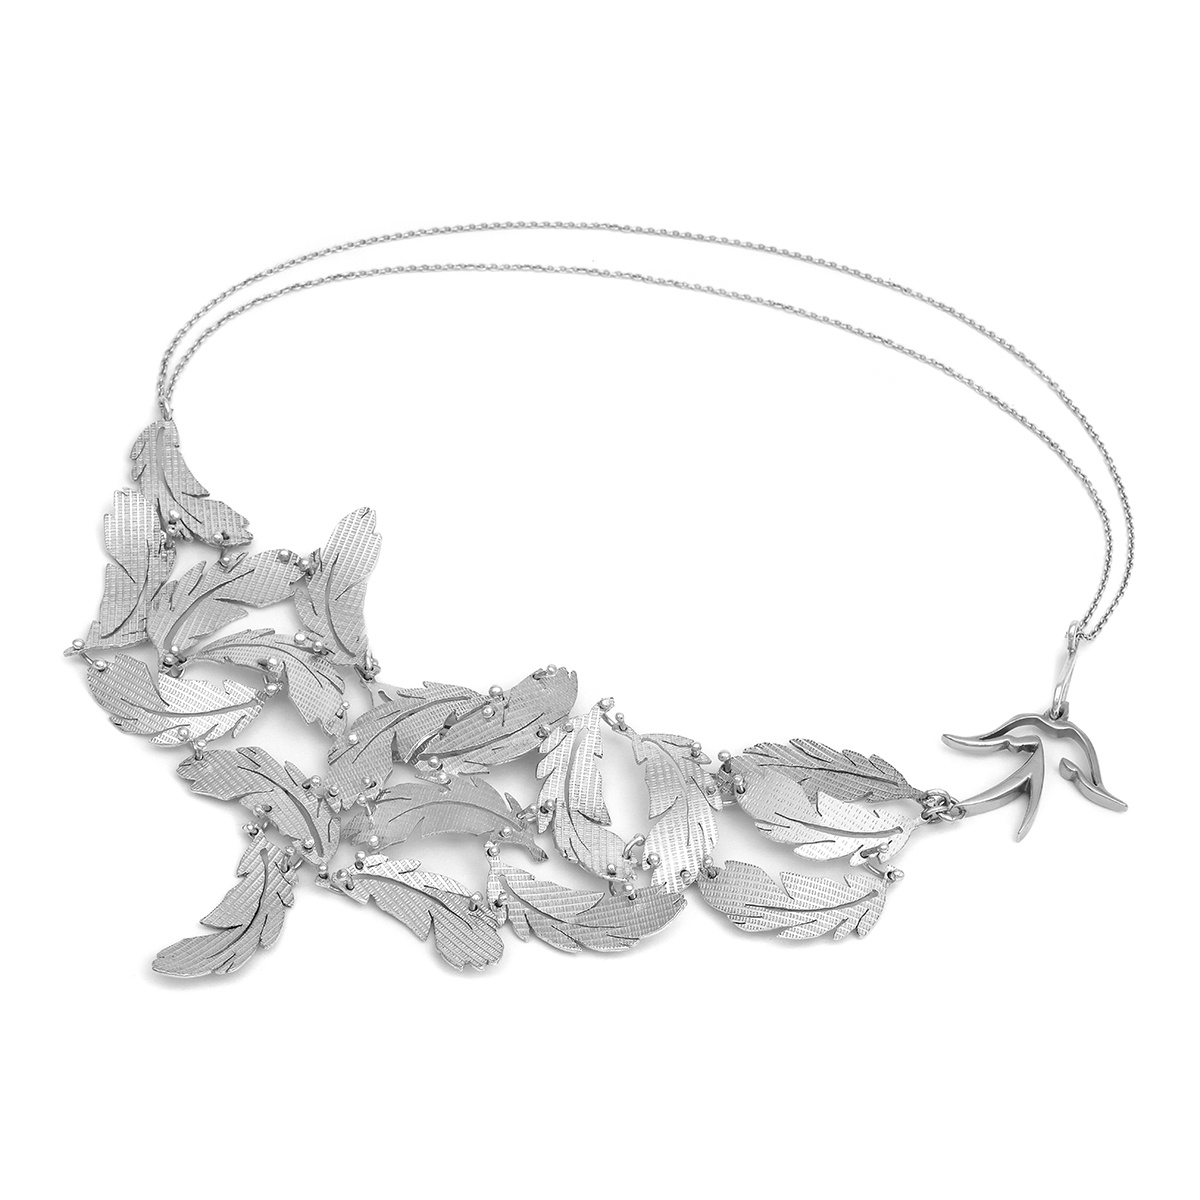 This stunning statement feather necklace is made up of handmade textured feathers, curved and joined so they move subtly and fit comforably.